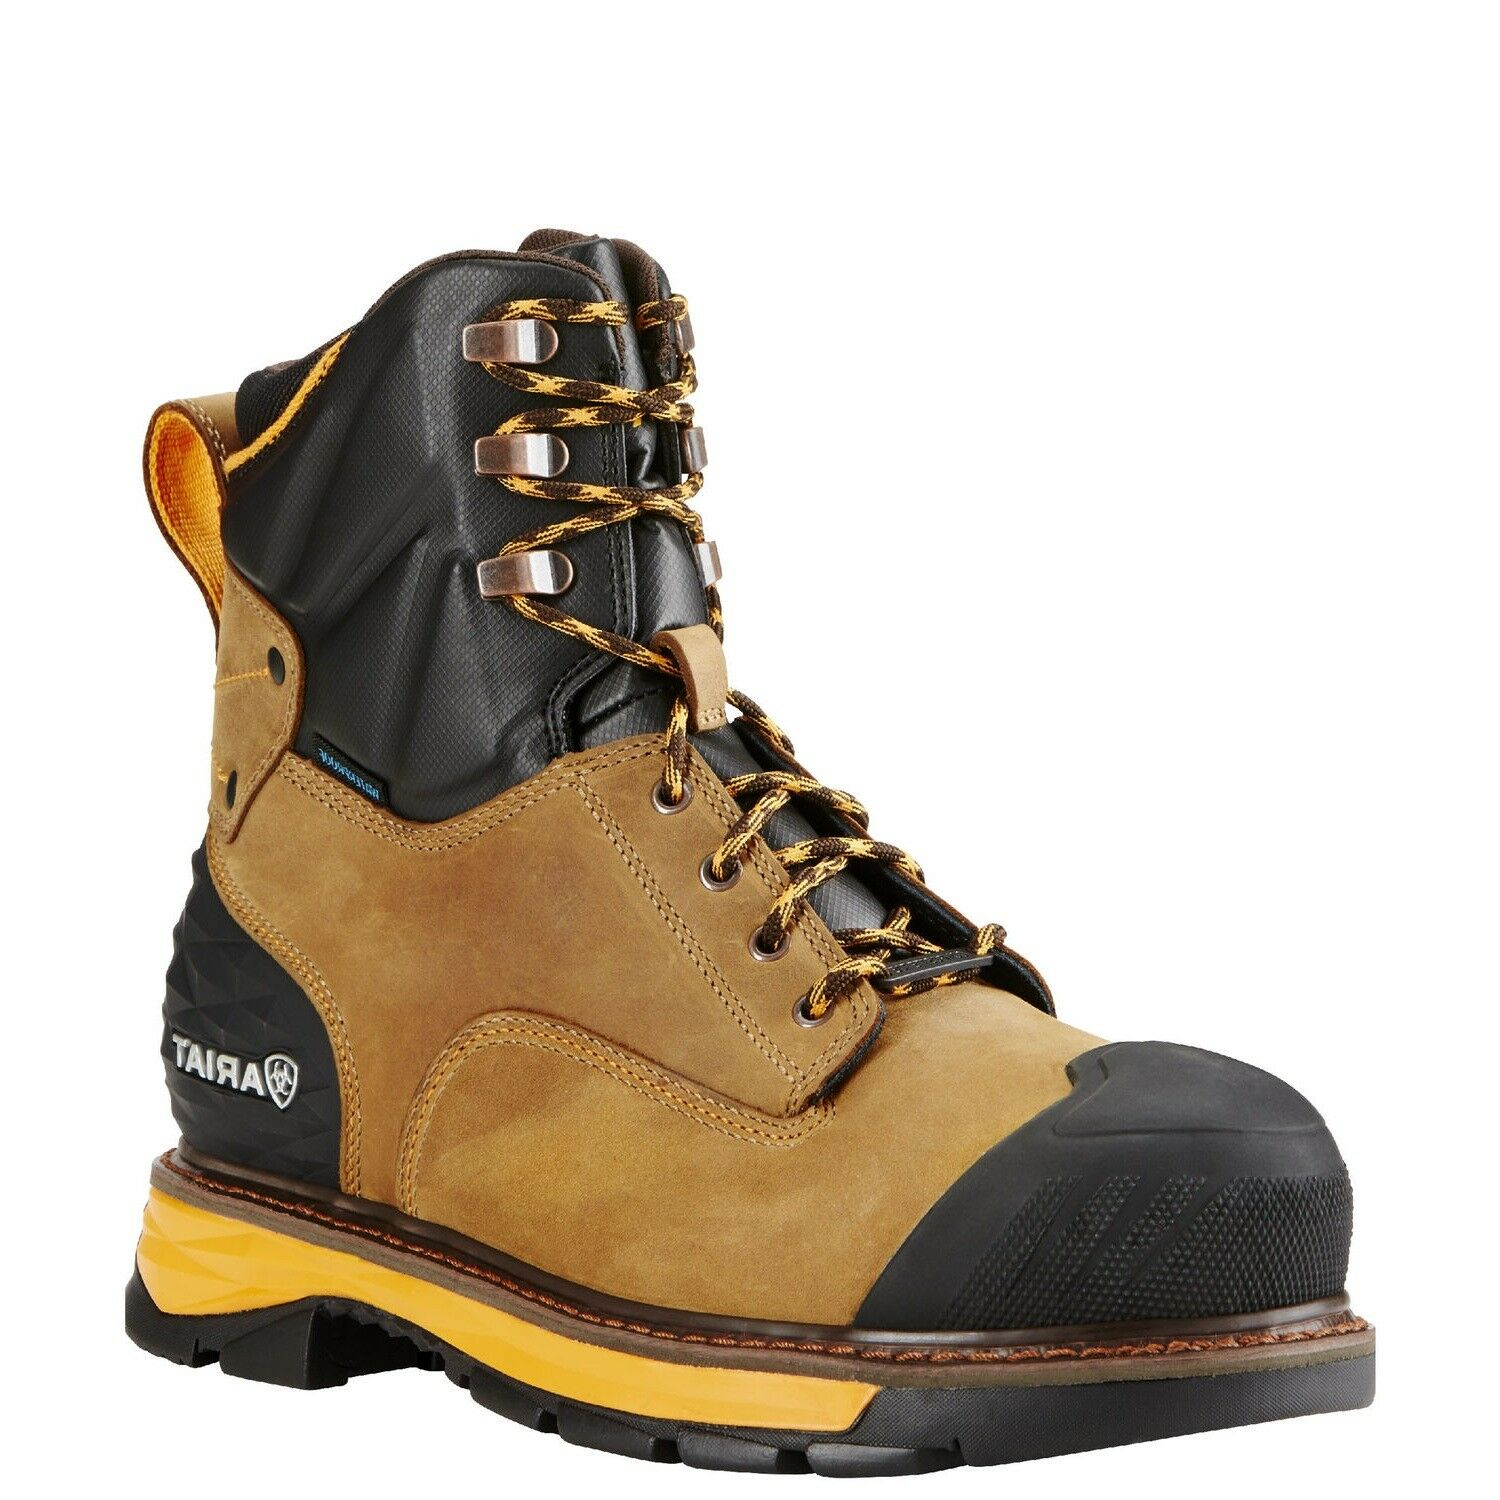 Ariat® Catalyst VX 8 Inch Waterproof Composite Composite Composite Toe Work Stivali 10018534 272de6